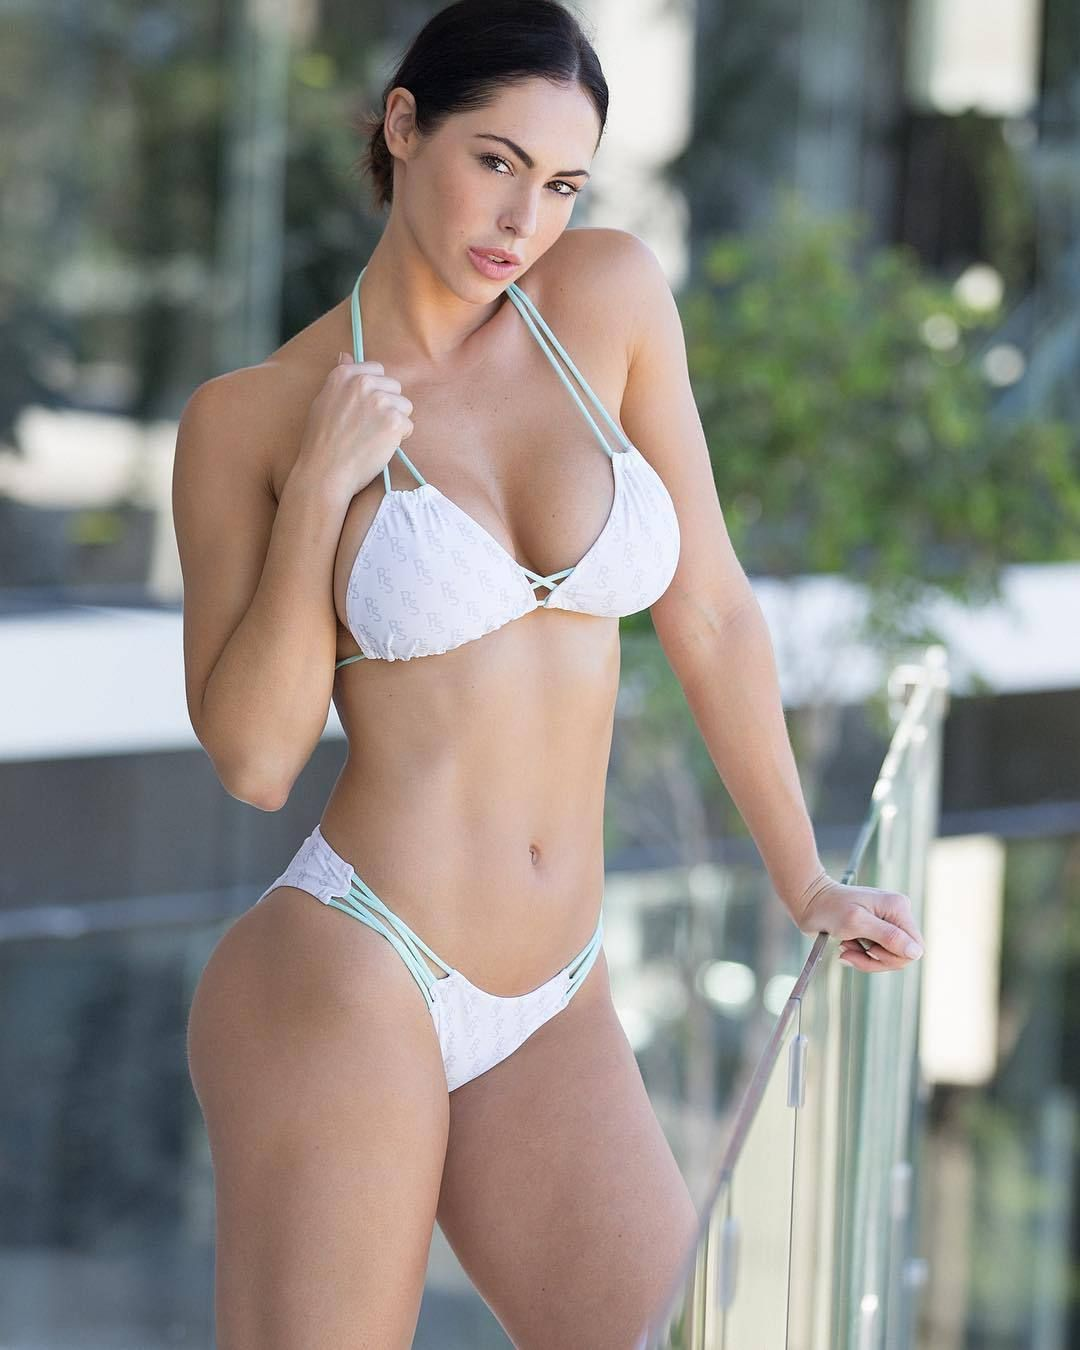 Hope Beel naked 513